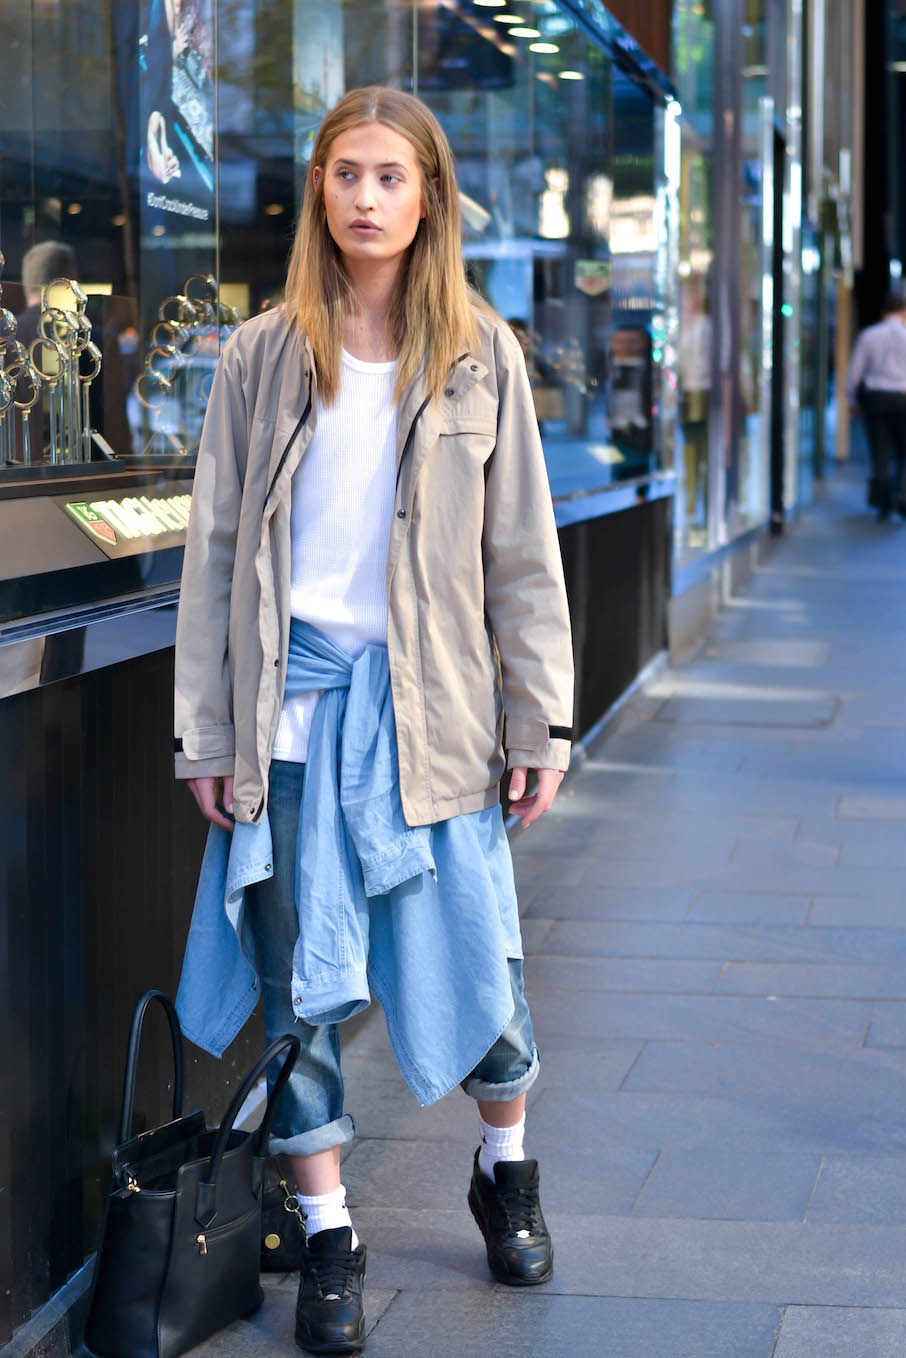 """NSW: Jordan Olaf, barista & model, out front of Myer. """"I'd describe my style as modern, luxury, 2001, future."""" Photo: Alice Scriberras"""